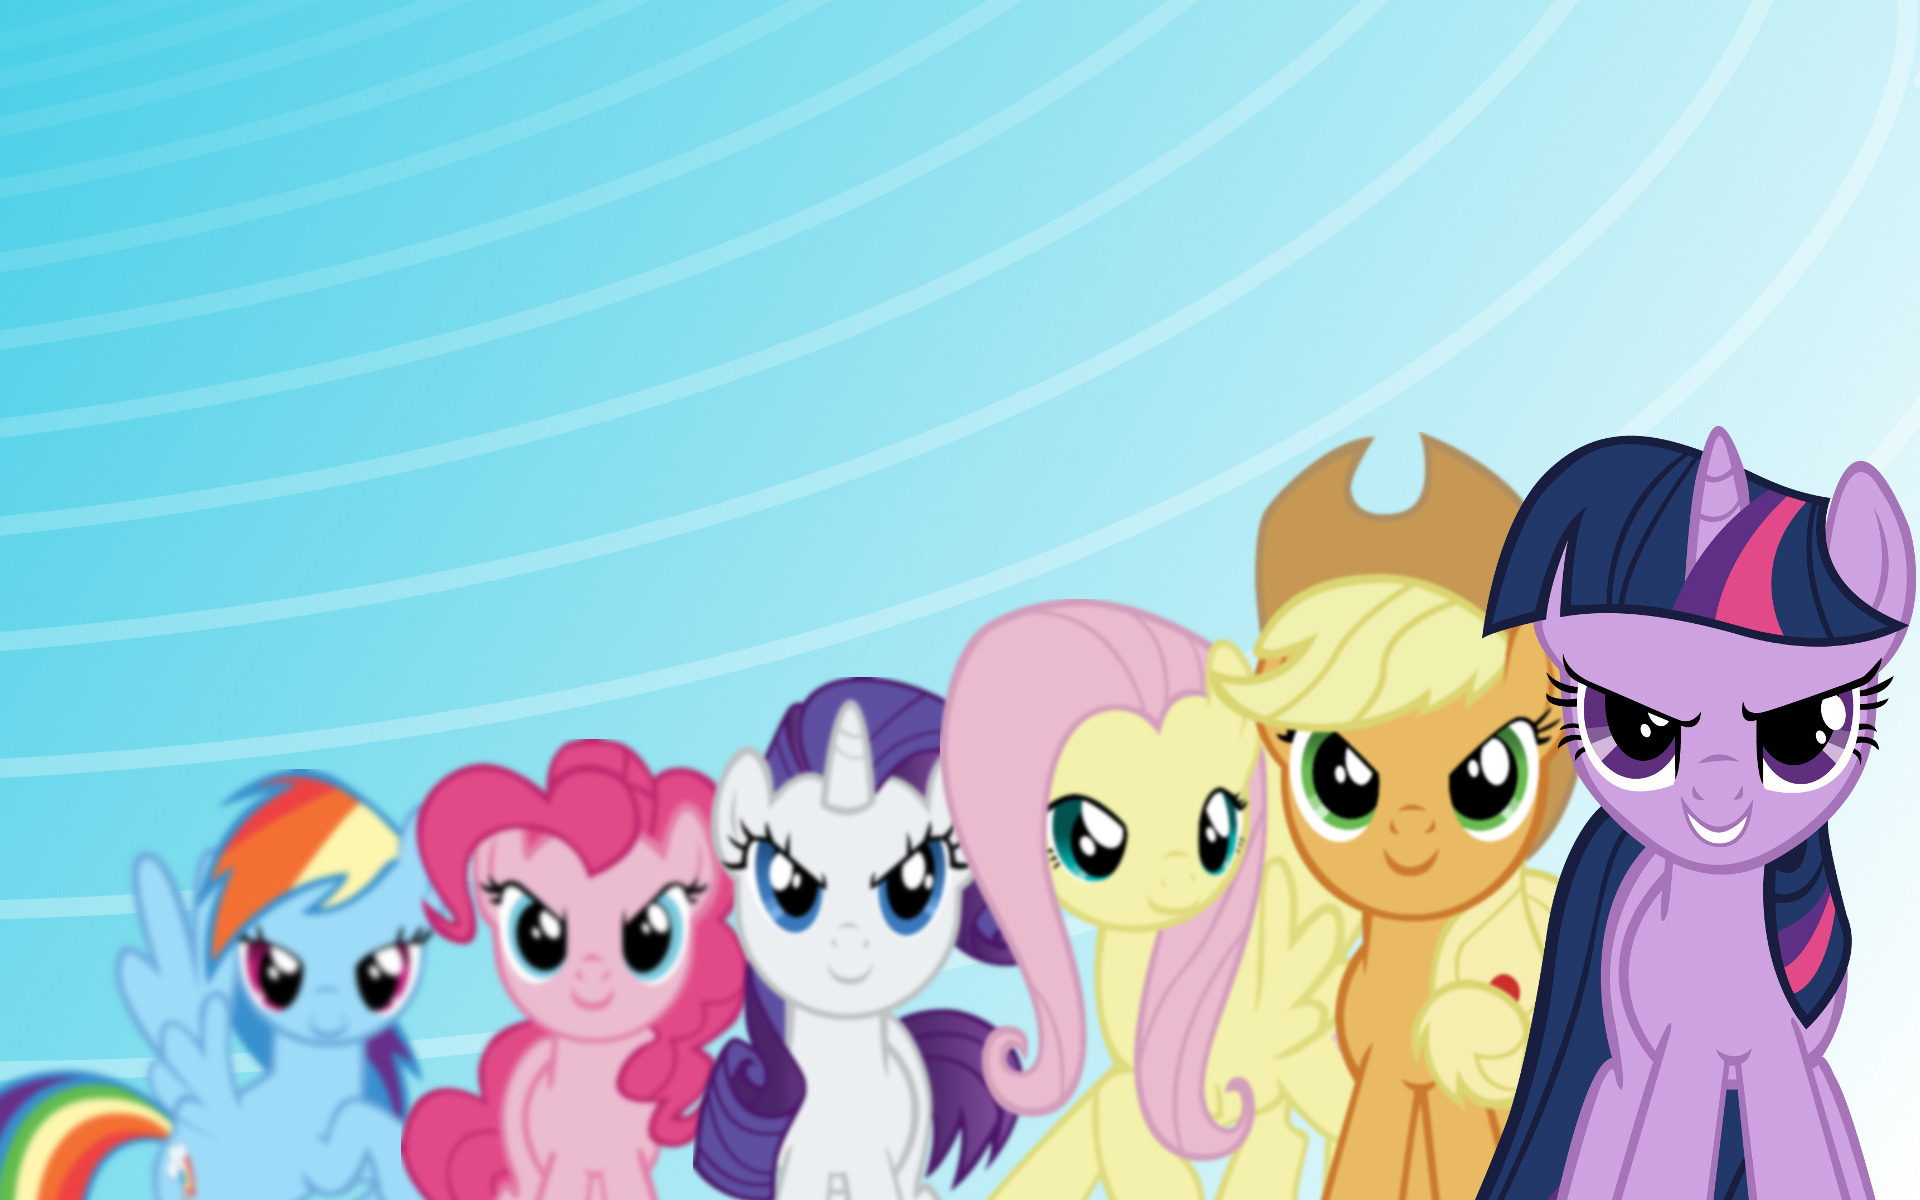 Free Download My Little Pony Wallpapers Hd 489161 1920x1200 For